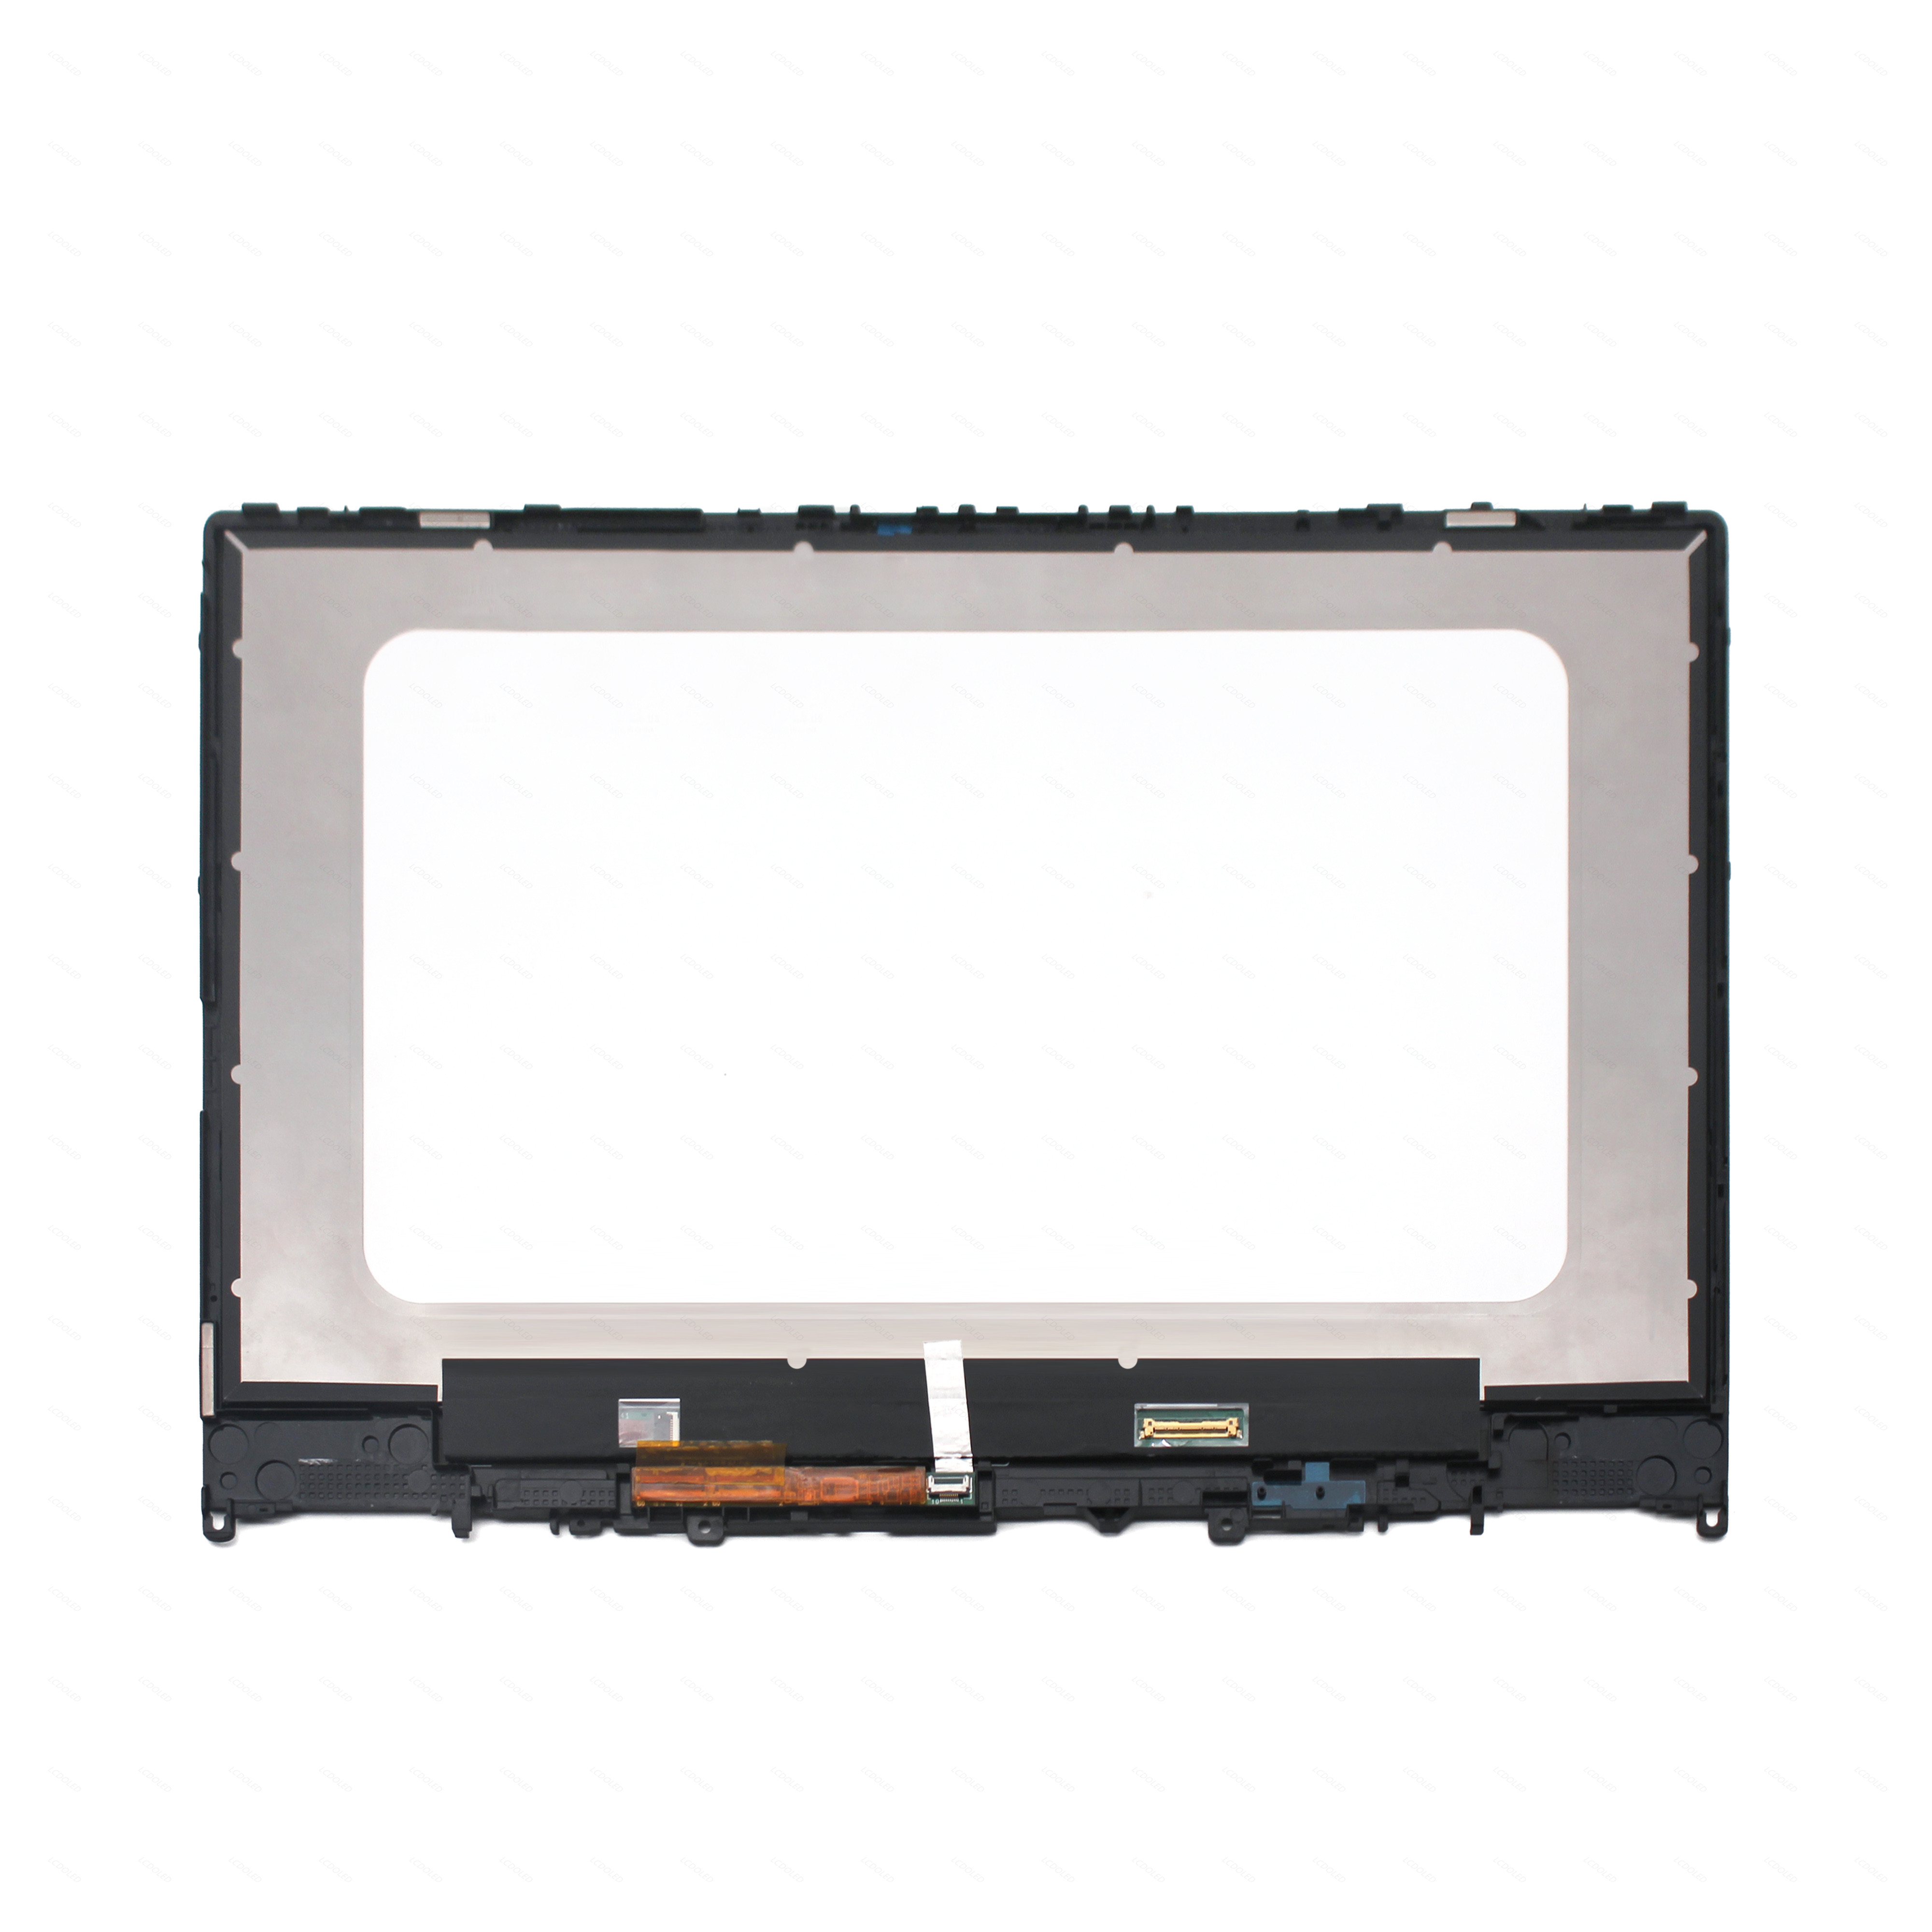 For Lenovo Yoga 530 14IKB 530 14ARR NT140WHM N43 5D10M42866 LCD Panel Display Screen Touch Glass Digitizer Assembly with Frame-in Laptop LCD Screen from Computer & Office    1